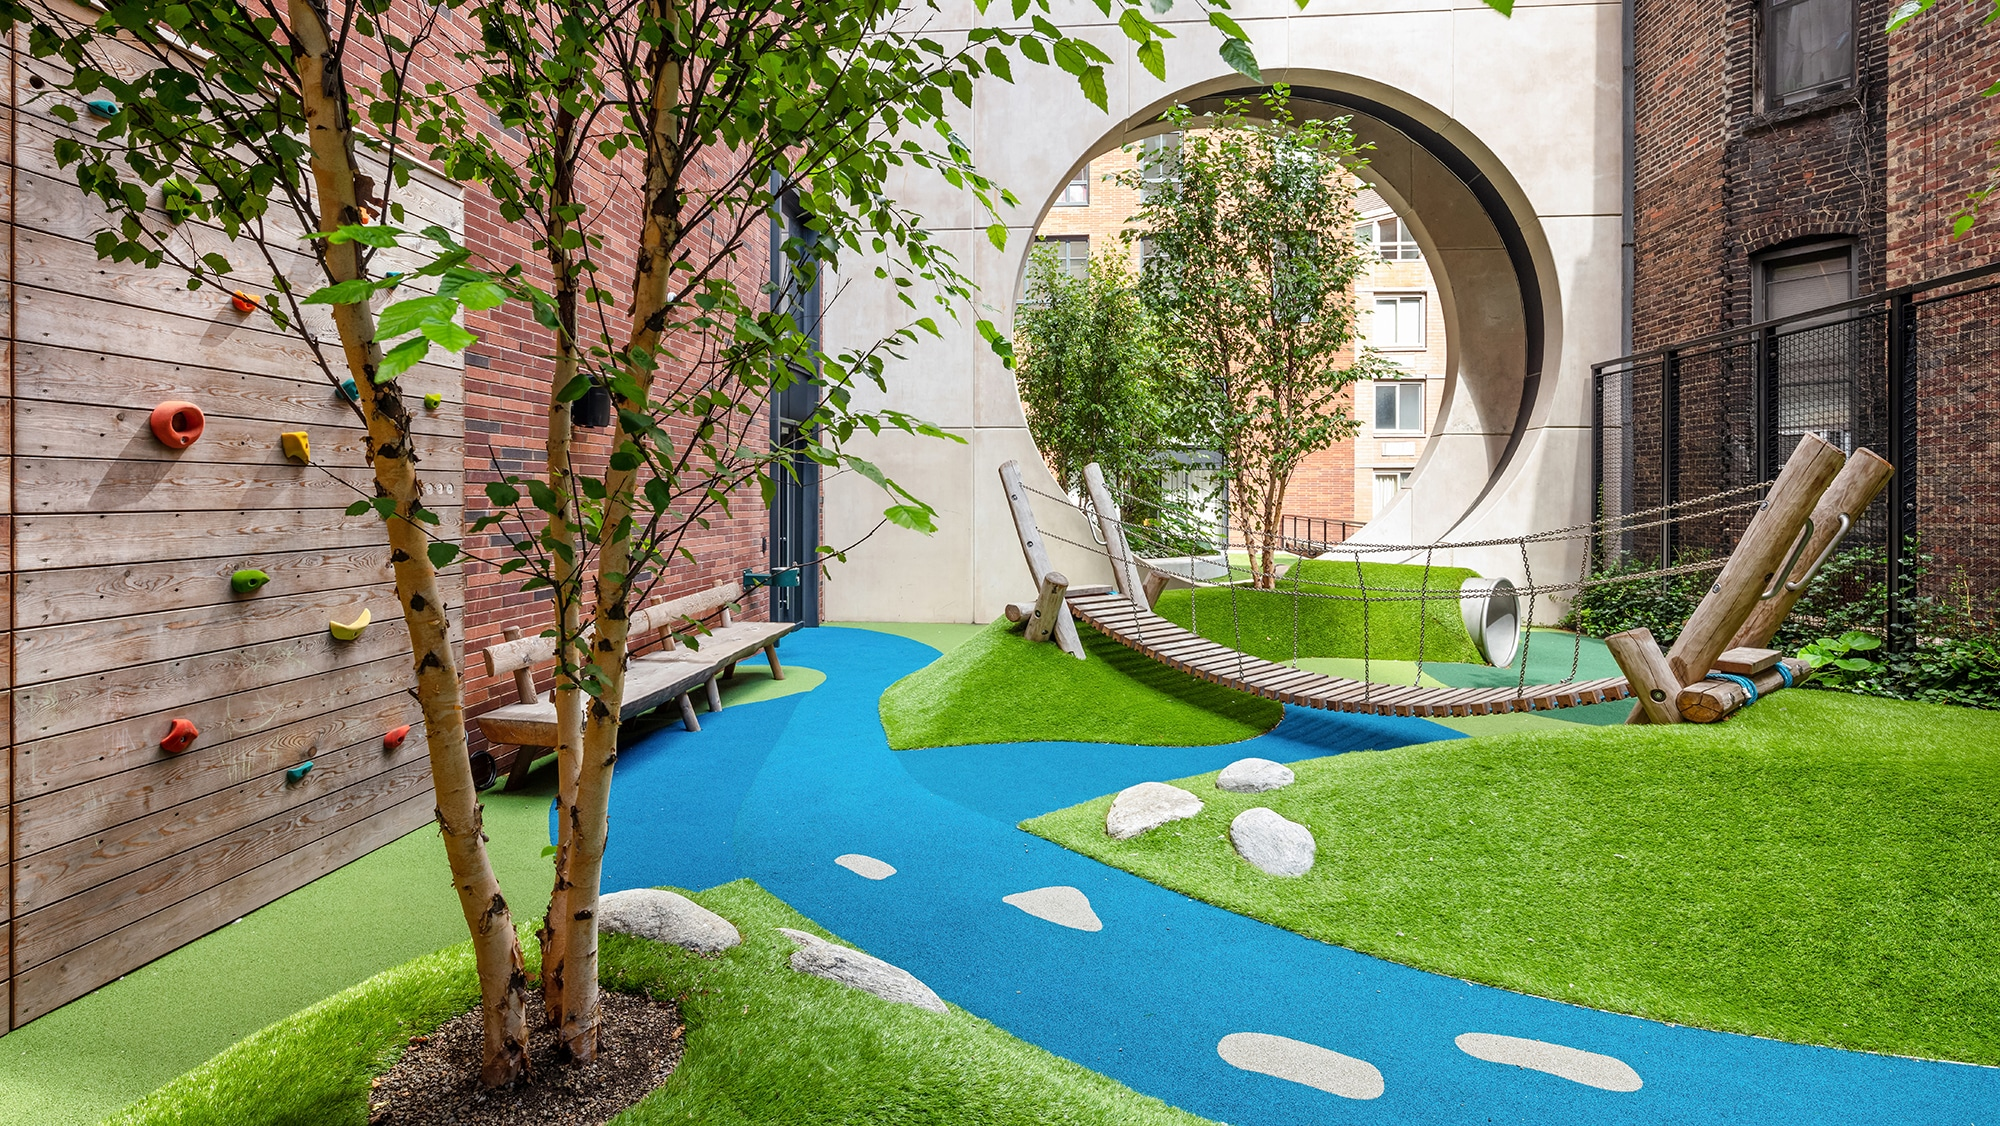 Kids playroom at The Kent condominiums in New York. Outdoor park theme with slide, turf floor, trees and a climbing wall.